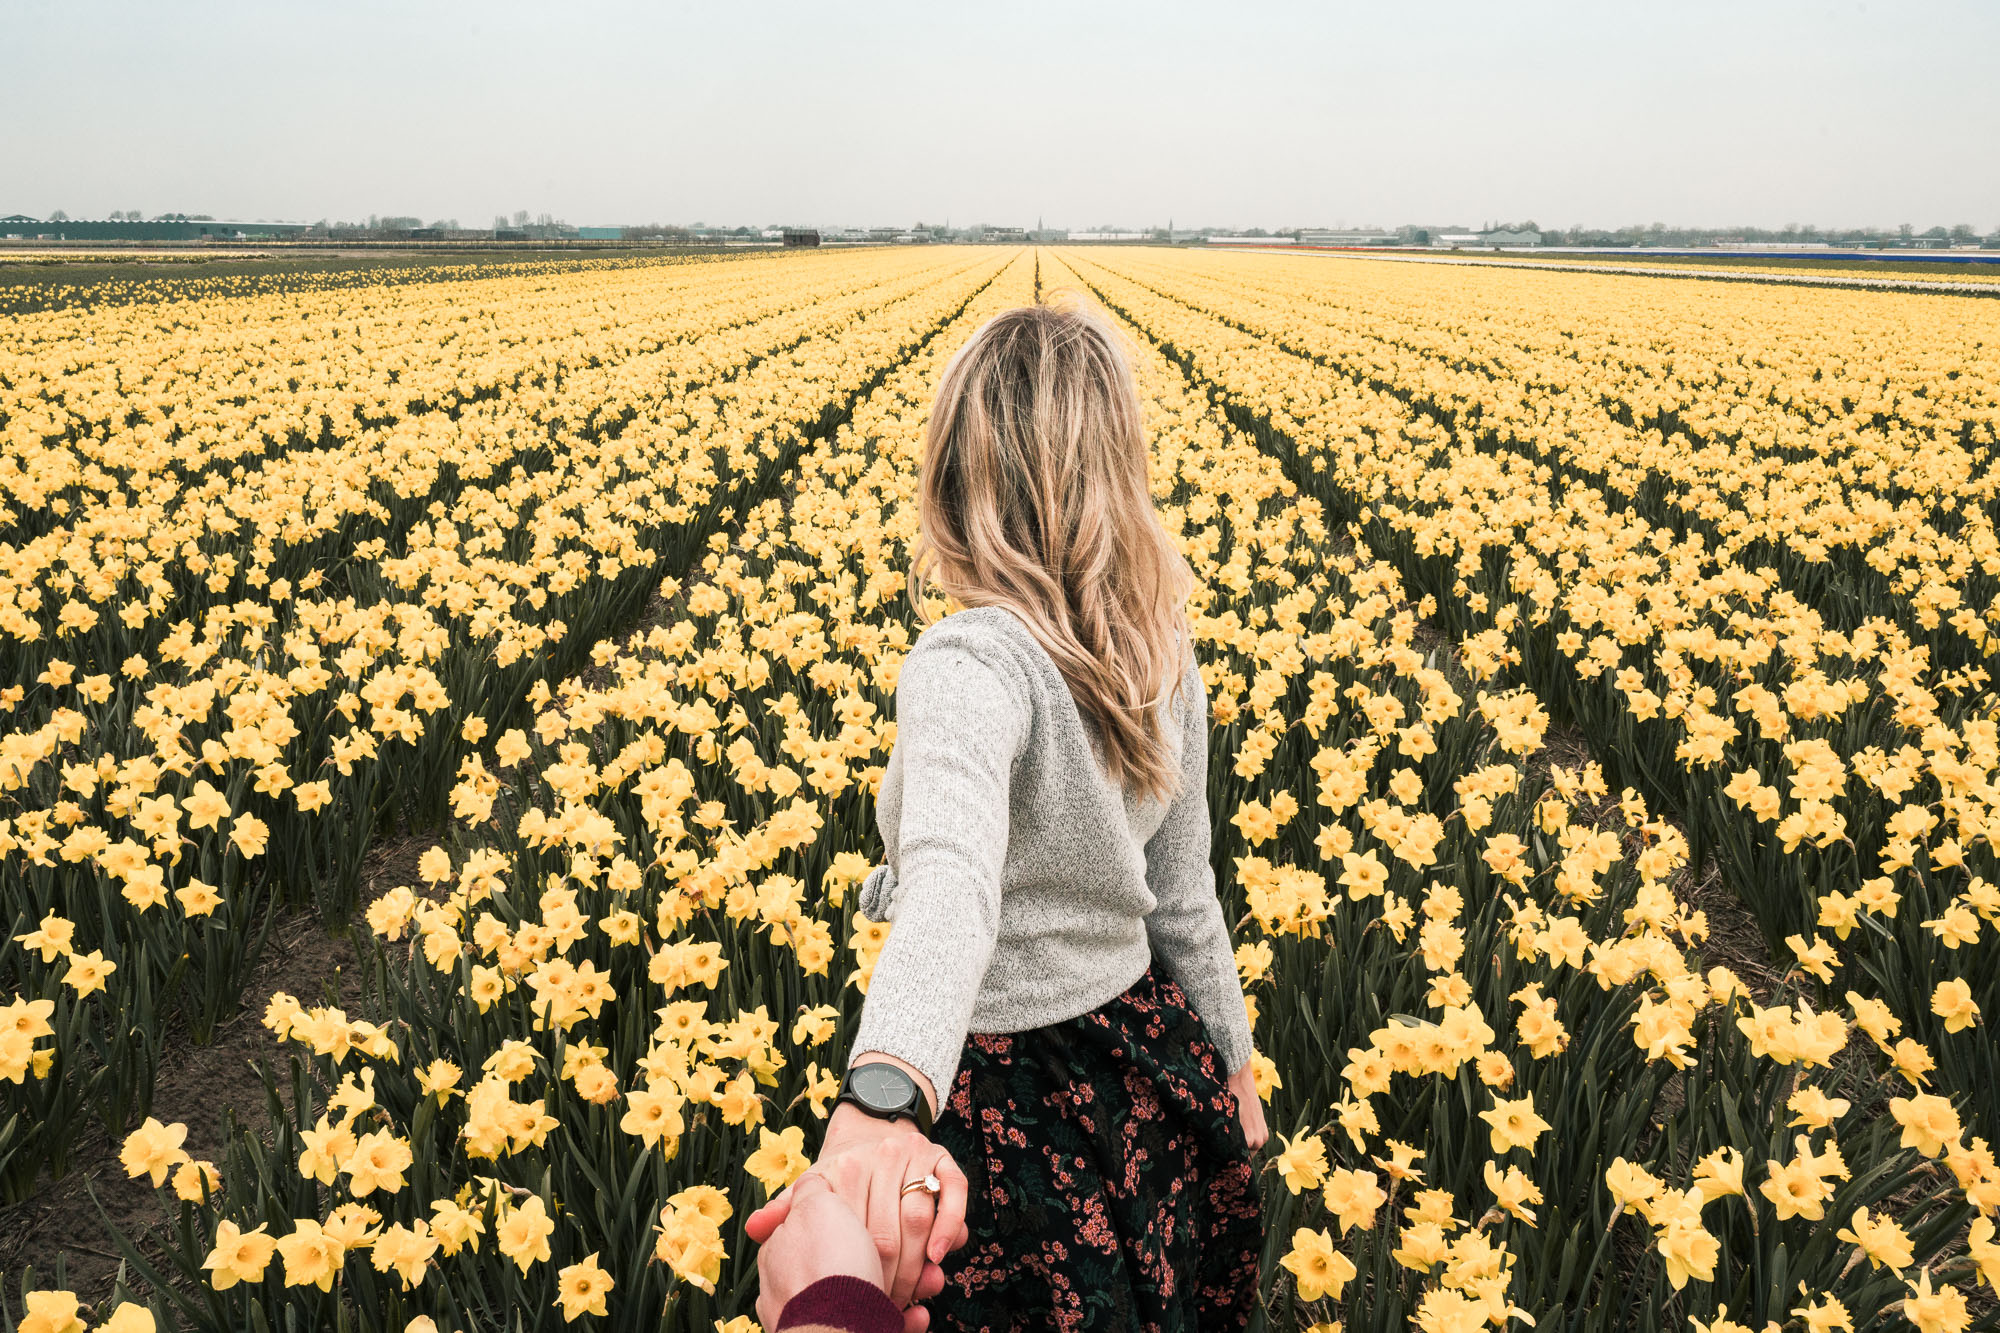 Flower fields in lisse keukenhof tulip season in the netherlands day trip amsterdam travel blogger selena taylor find us lost